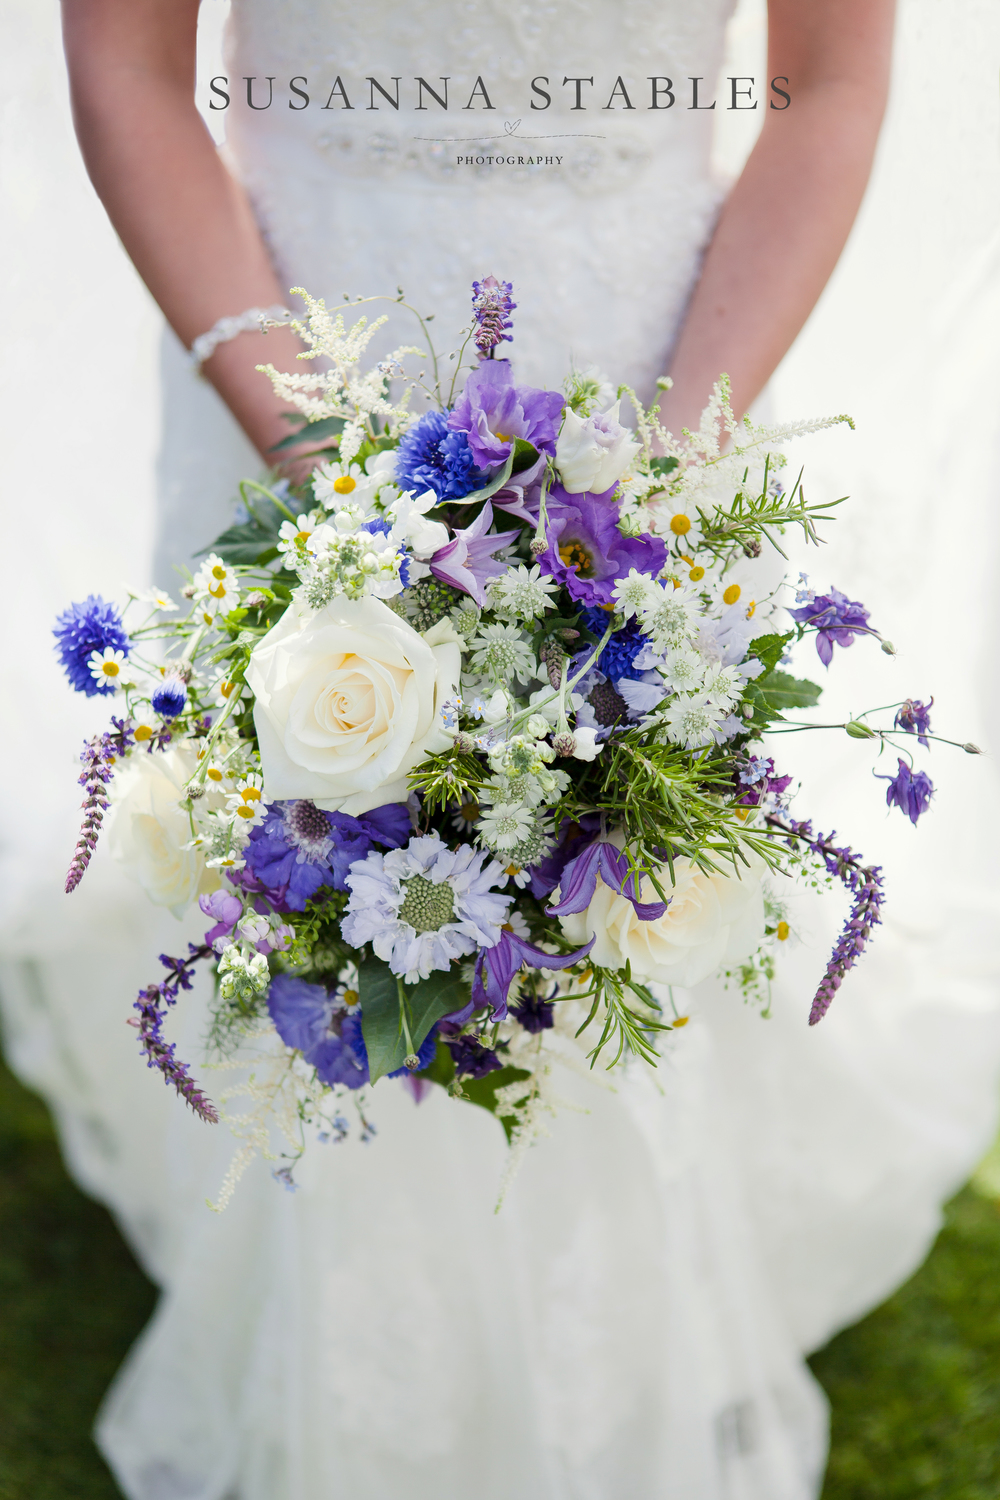 All the beautiful bouquets and flowers in the marquee where done by Inspired Elegance Florist.